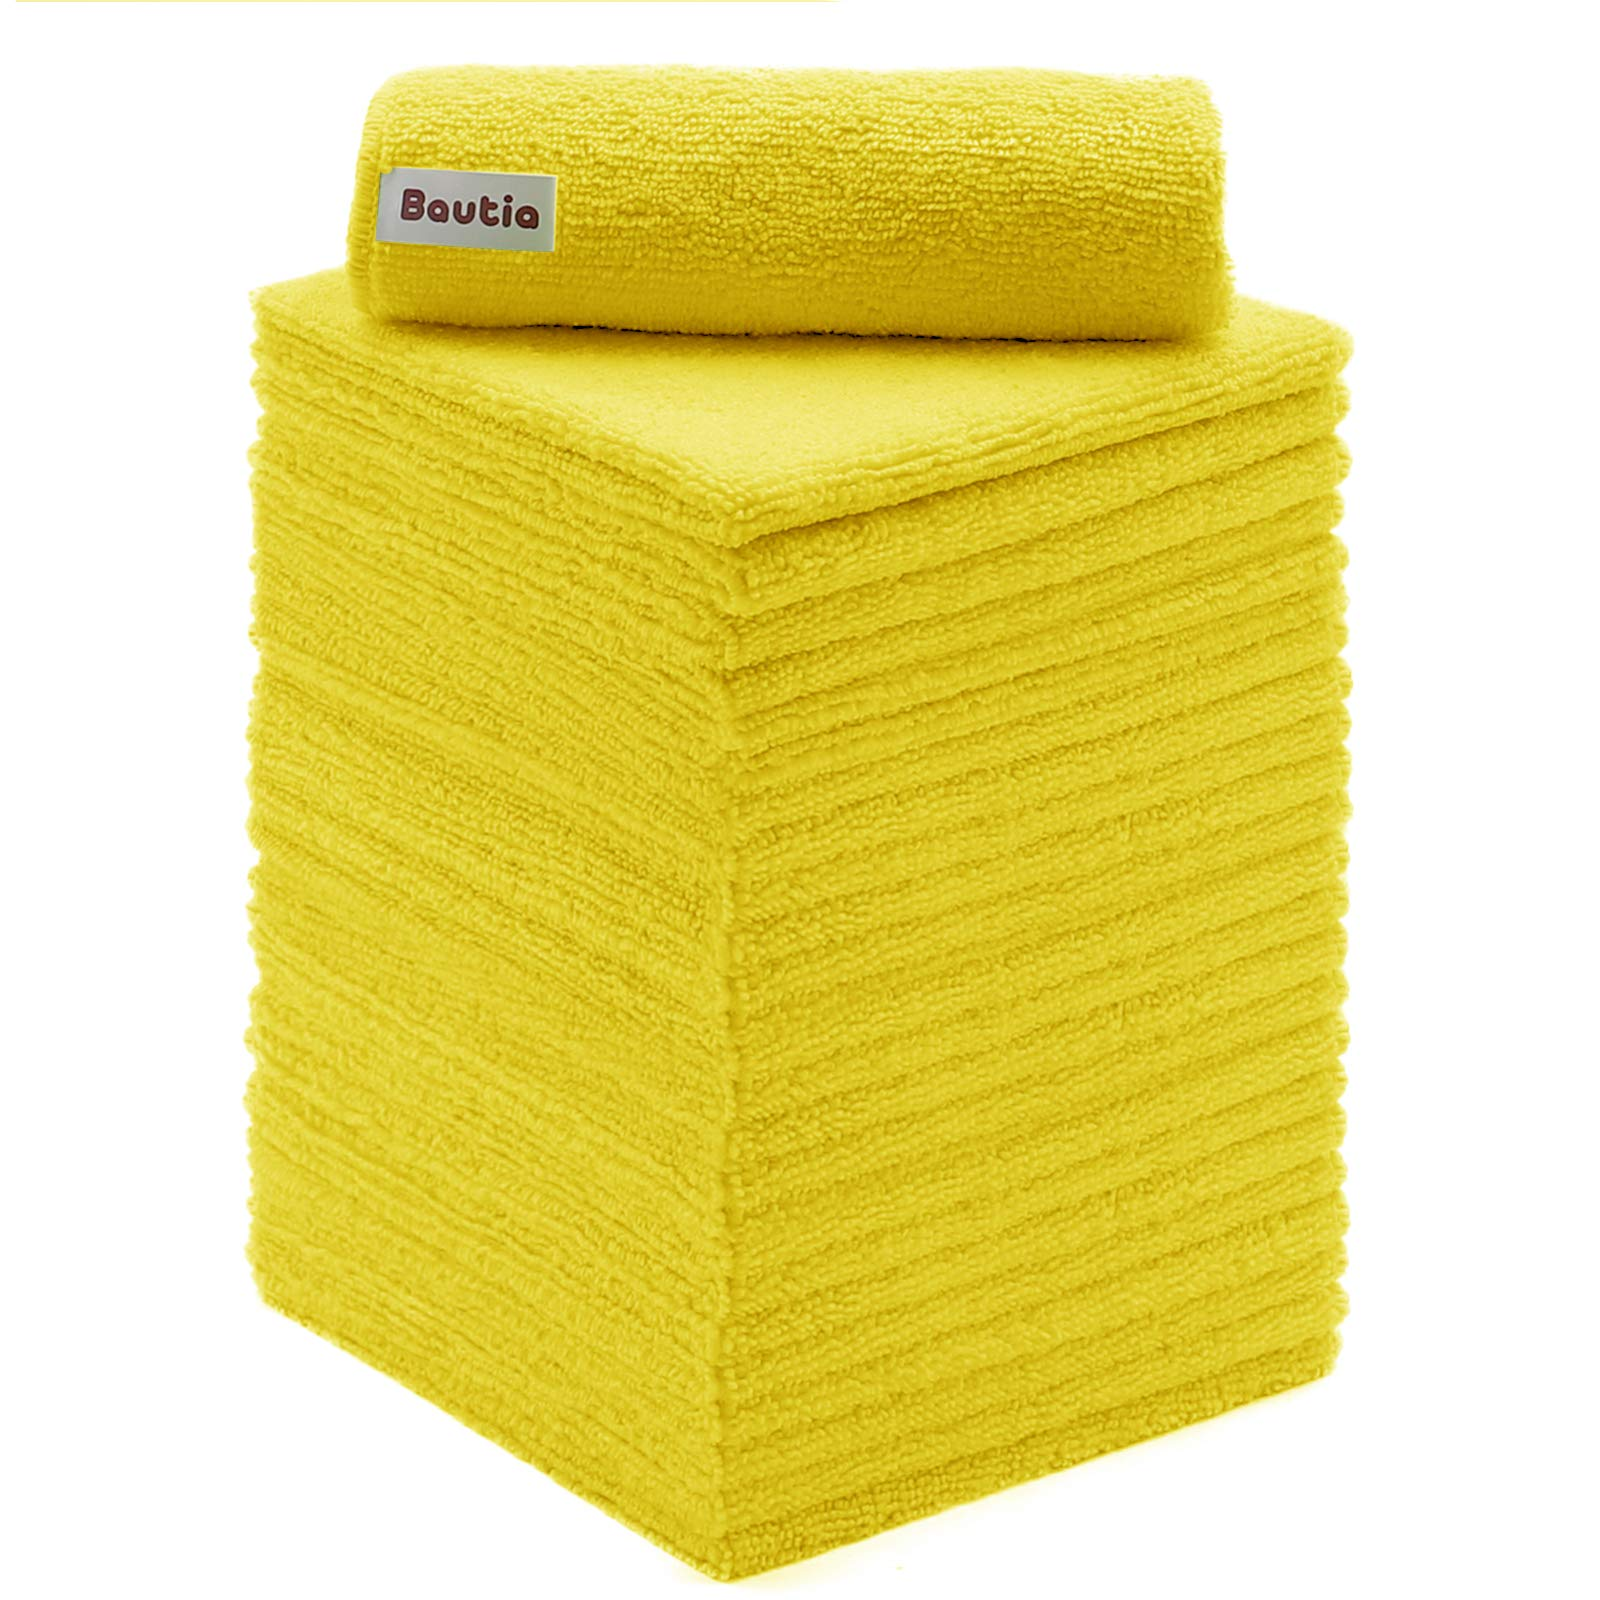 """Bautia Microfiber Cleaning Rags for Housekeeping, Microfiber Cleaning Cloth 24 Pack, Microfiber Cleaning Towels Rags for Cleaning House Kitchen Bathroom Car 12.6""""x12.6"""" Yellow"""